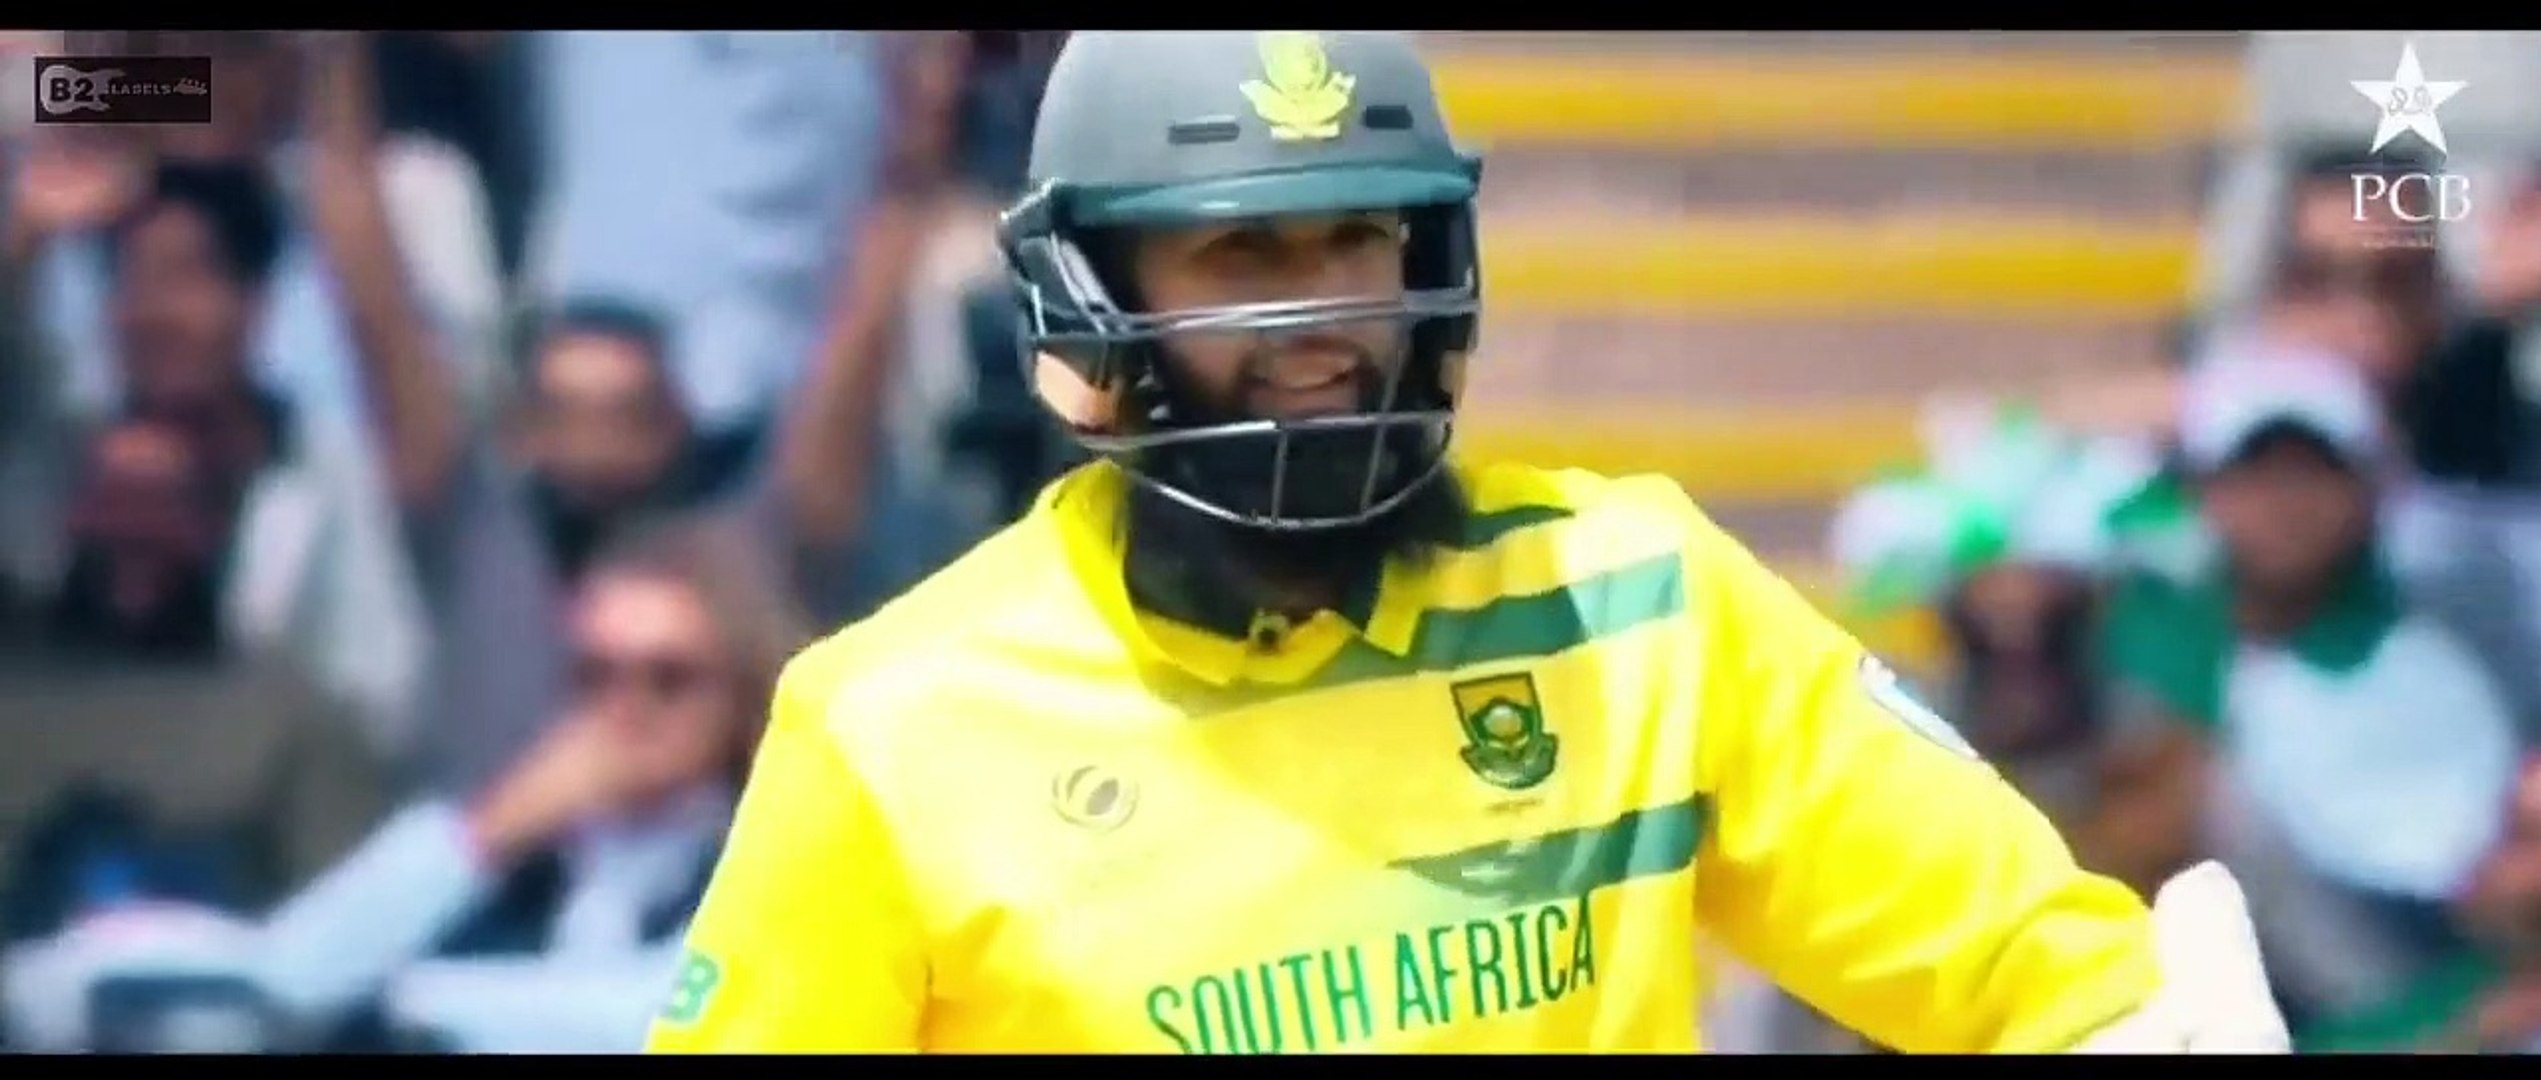 Dale Gi Dhamal - Mehmood J - Official Song- (ICC Cricket World Cup 2021) The Music World